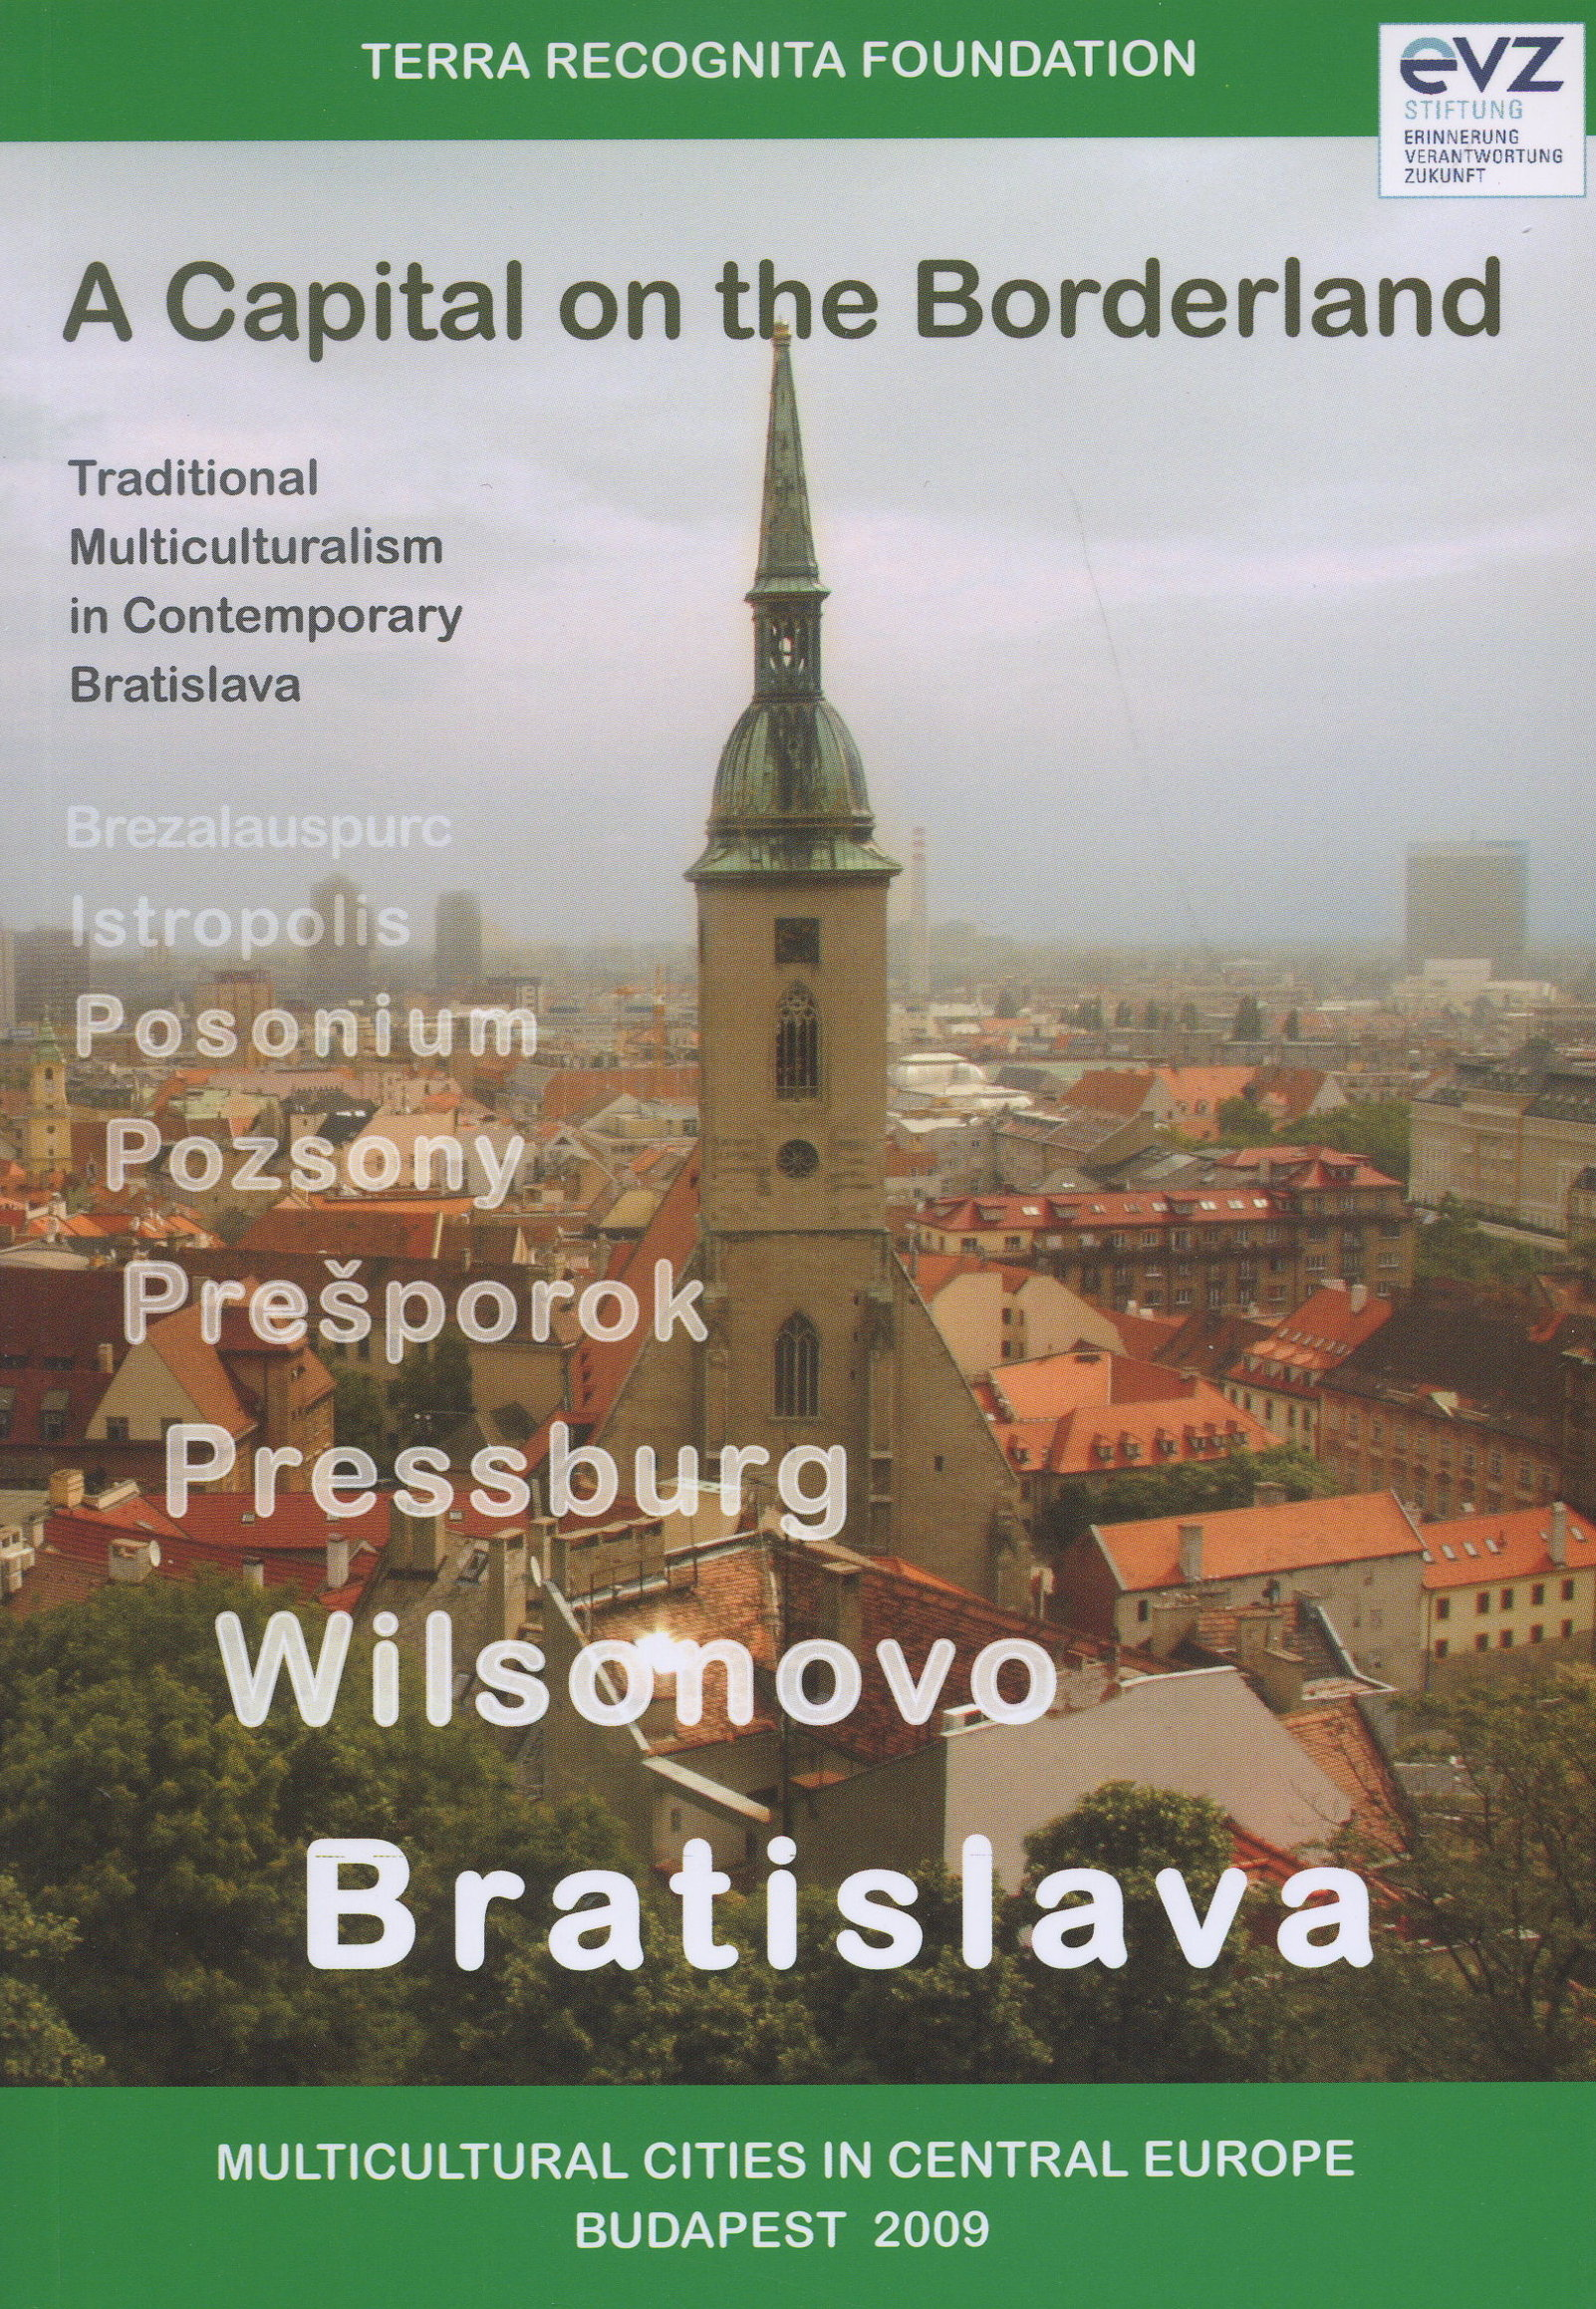 A Capital on the Borderland - Traditional Multiculturalism in Contemporary Bratislava